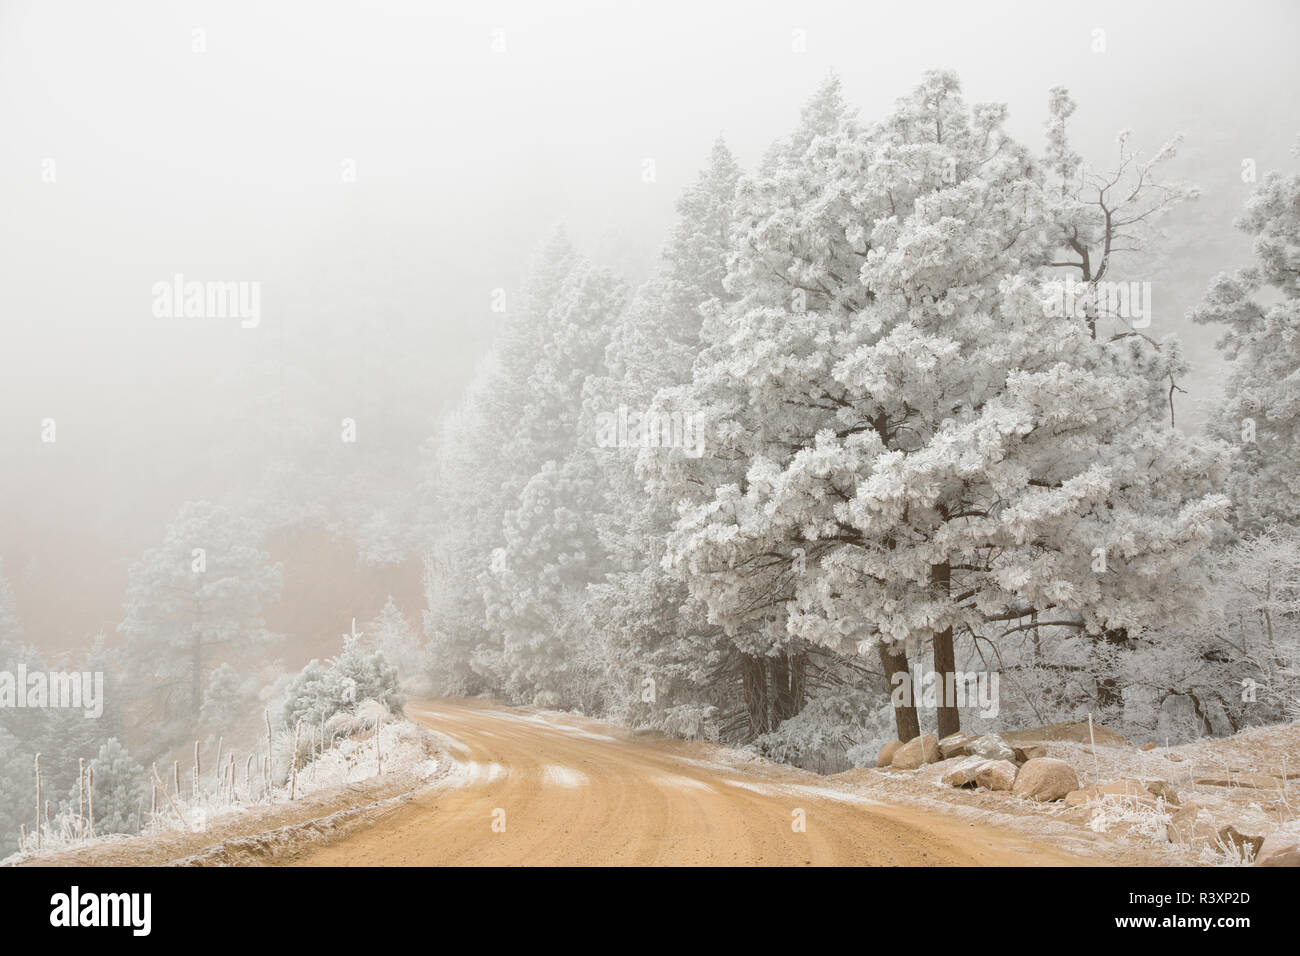 USA, Colorado, Front Range. Road through frost-covered forest. - Stock Image